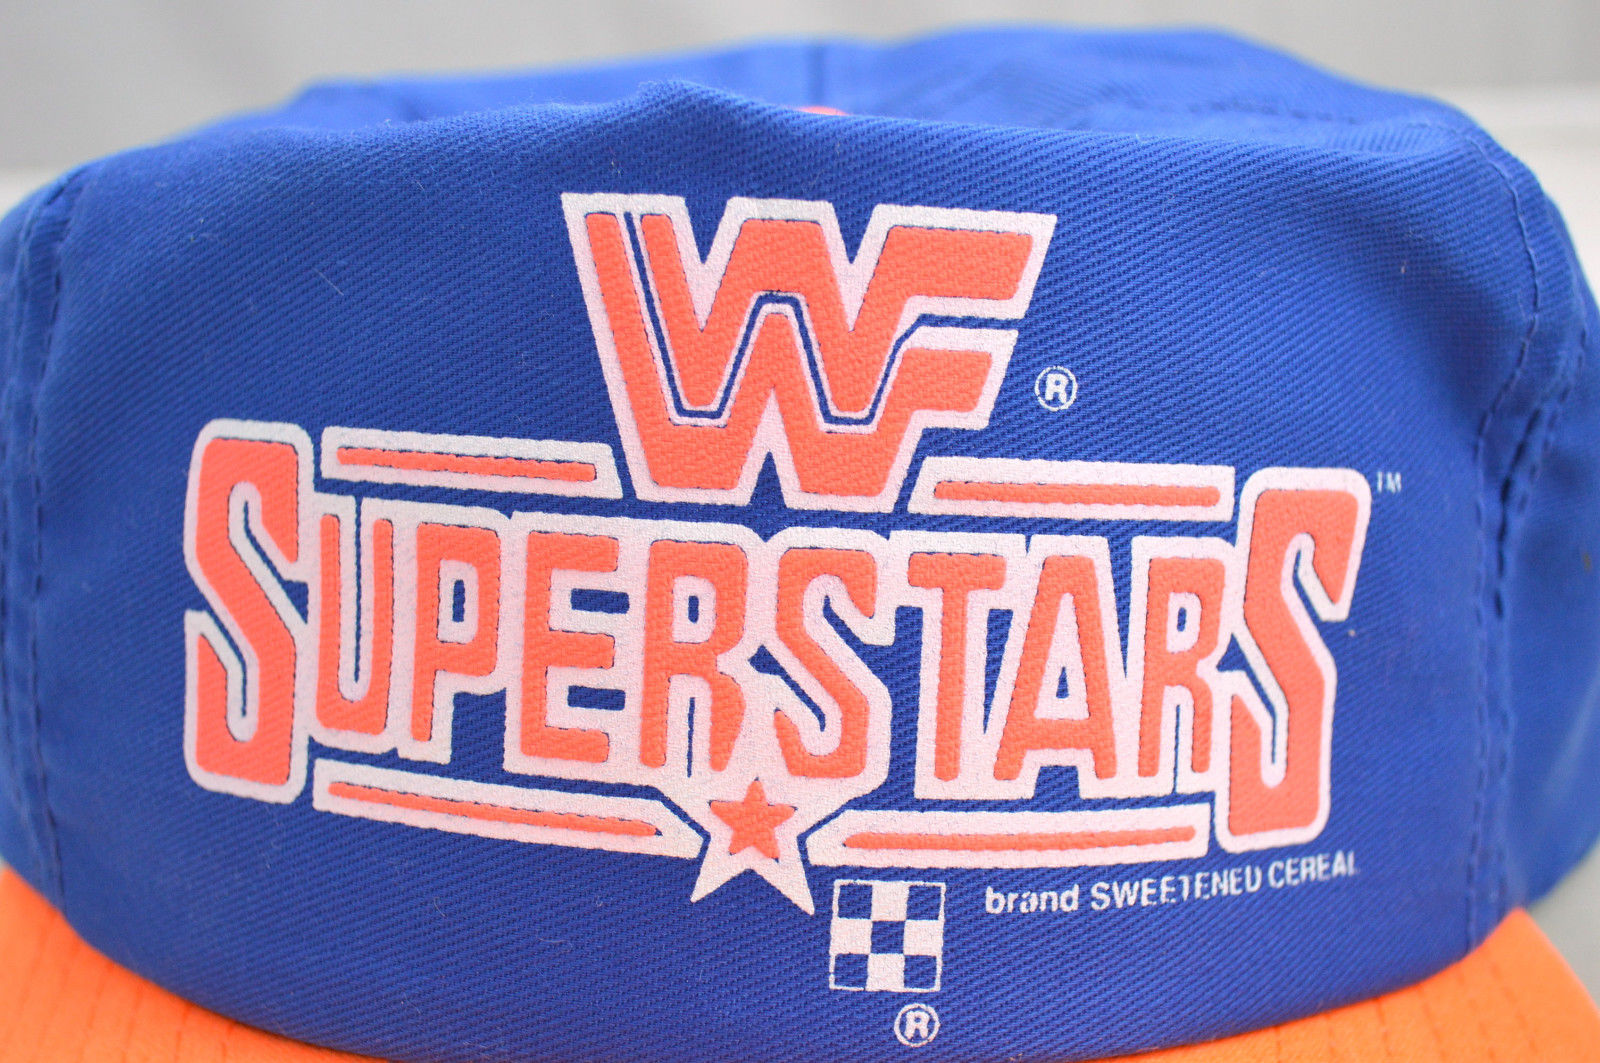 WWF Superstars Cereal cap hat 2